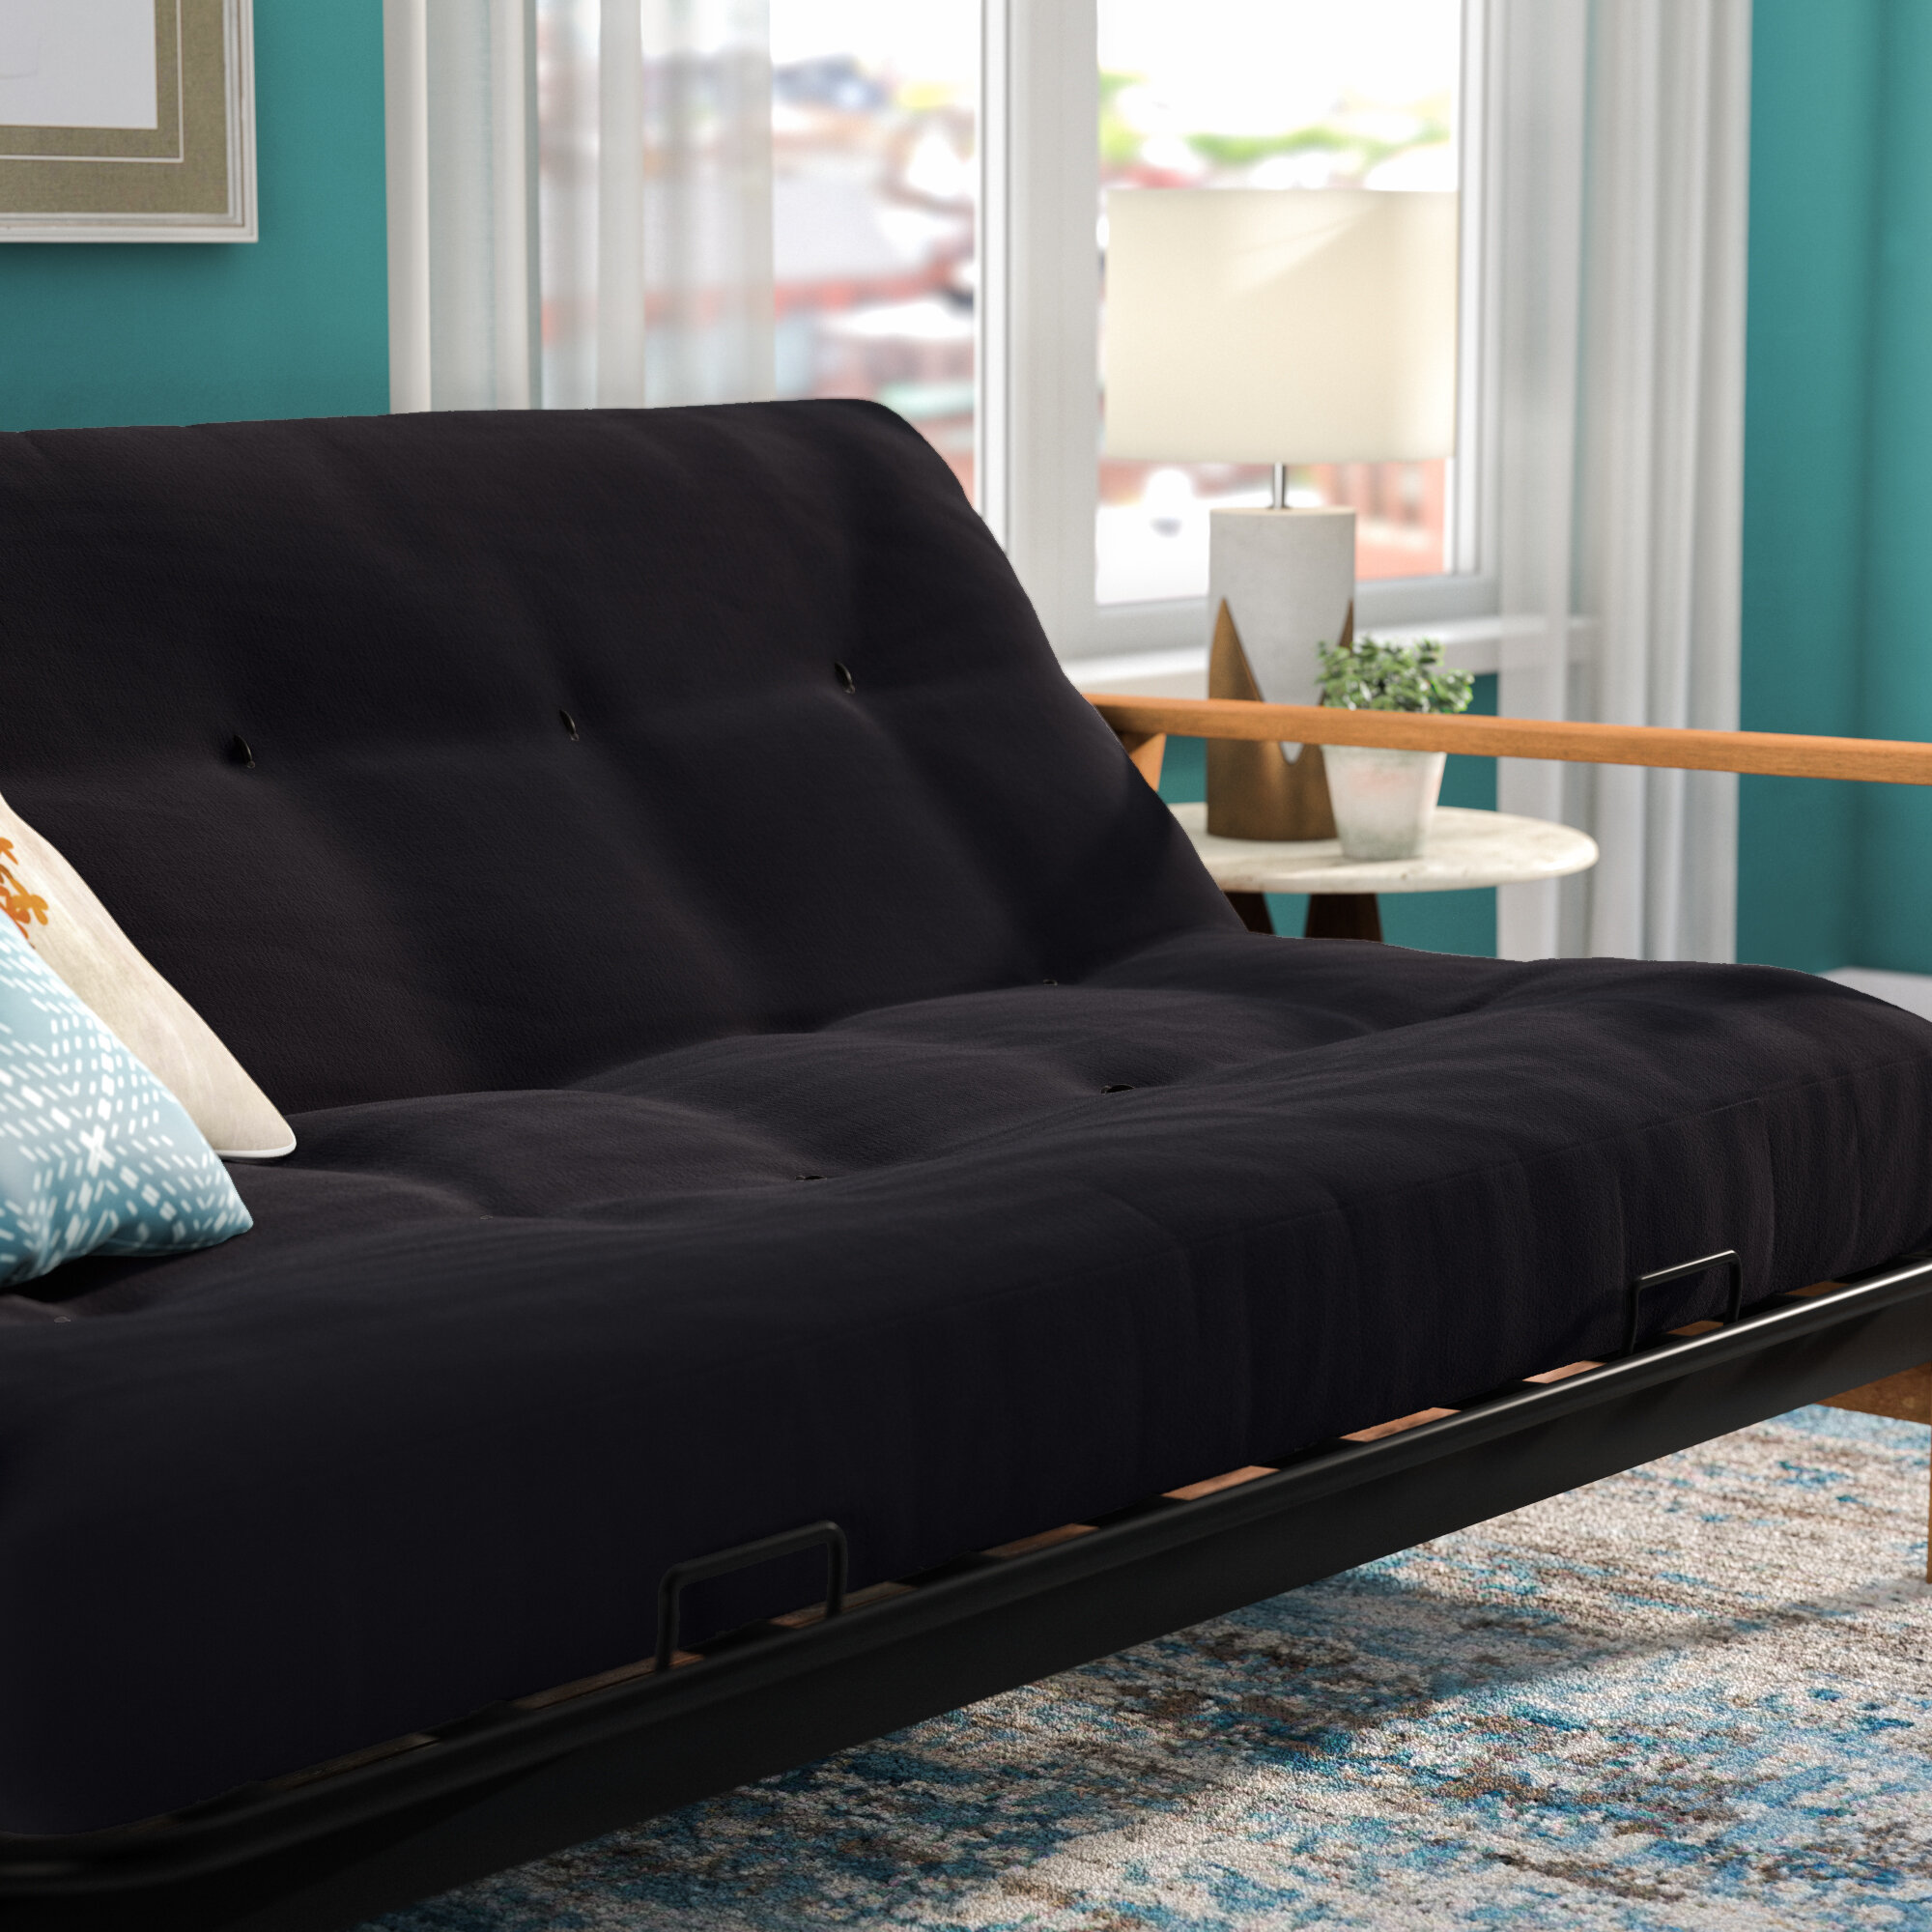 flipboard sleeper top reviews comfy best futon on chairs topsee sales